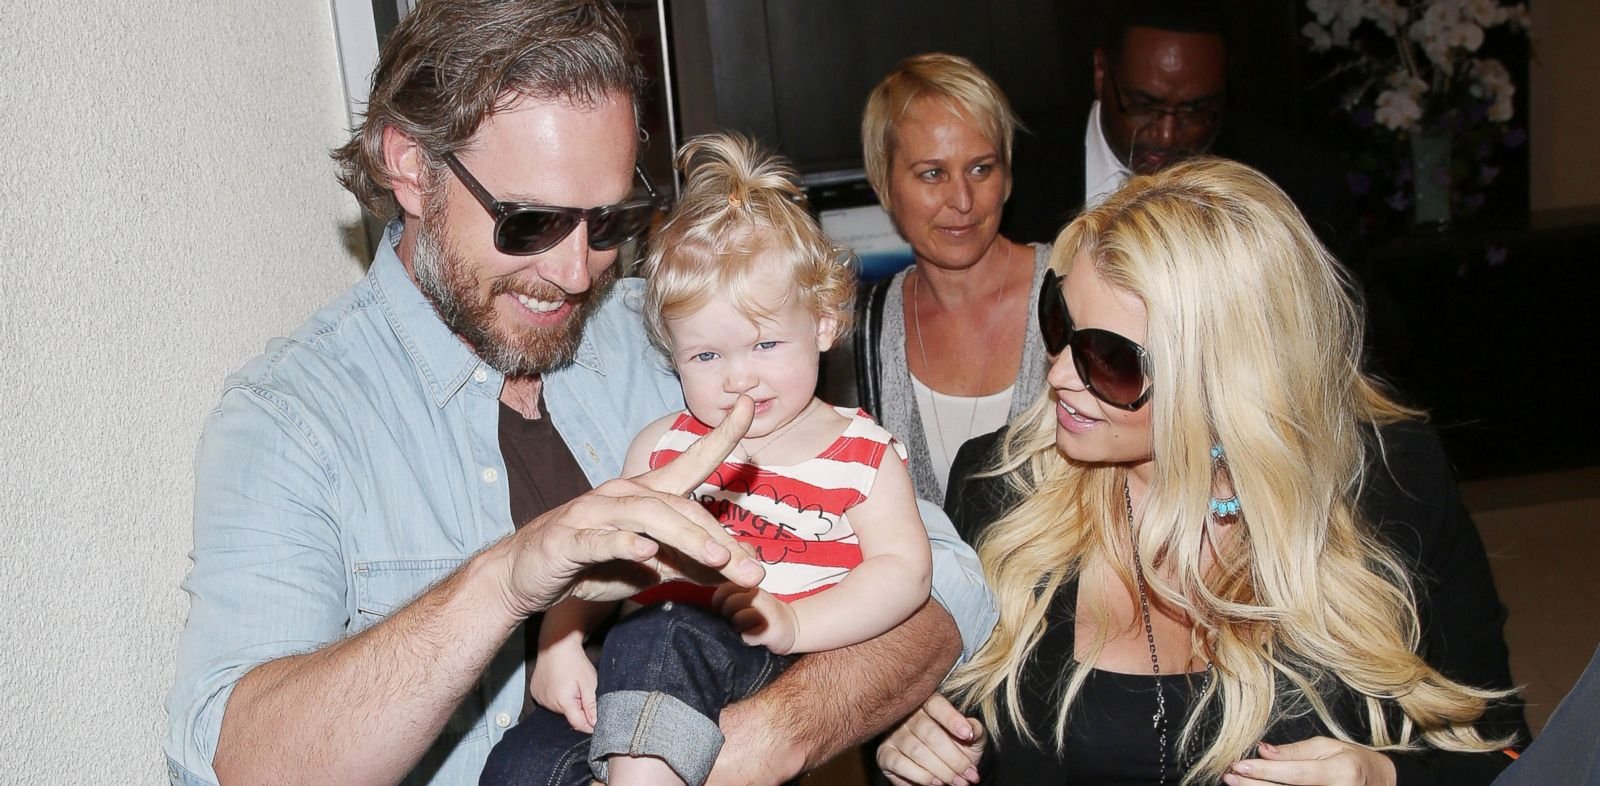 PHOTO: Jessica Simpson arrives at Los Angeles International Airport, with boyfriend Eric Johnson and daughter Maxwell in tow, May 5, 2013 in Los Angeles.